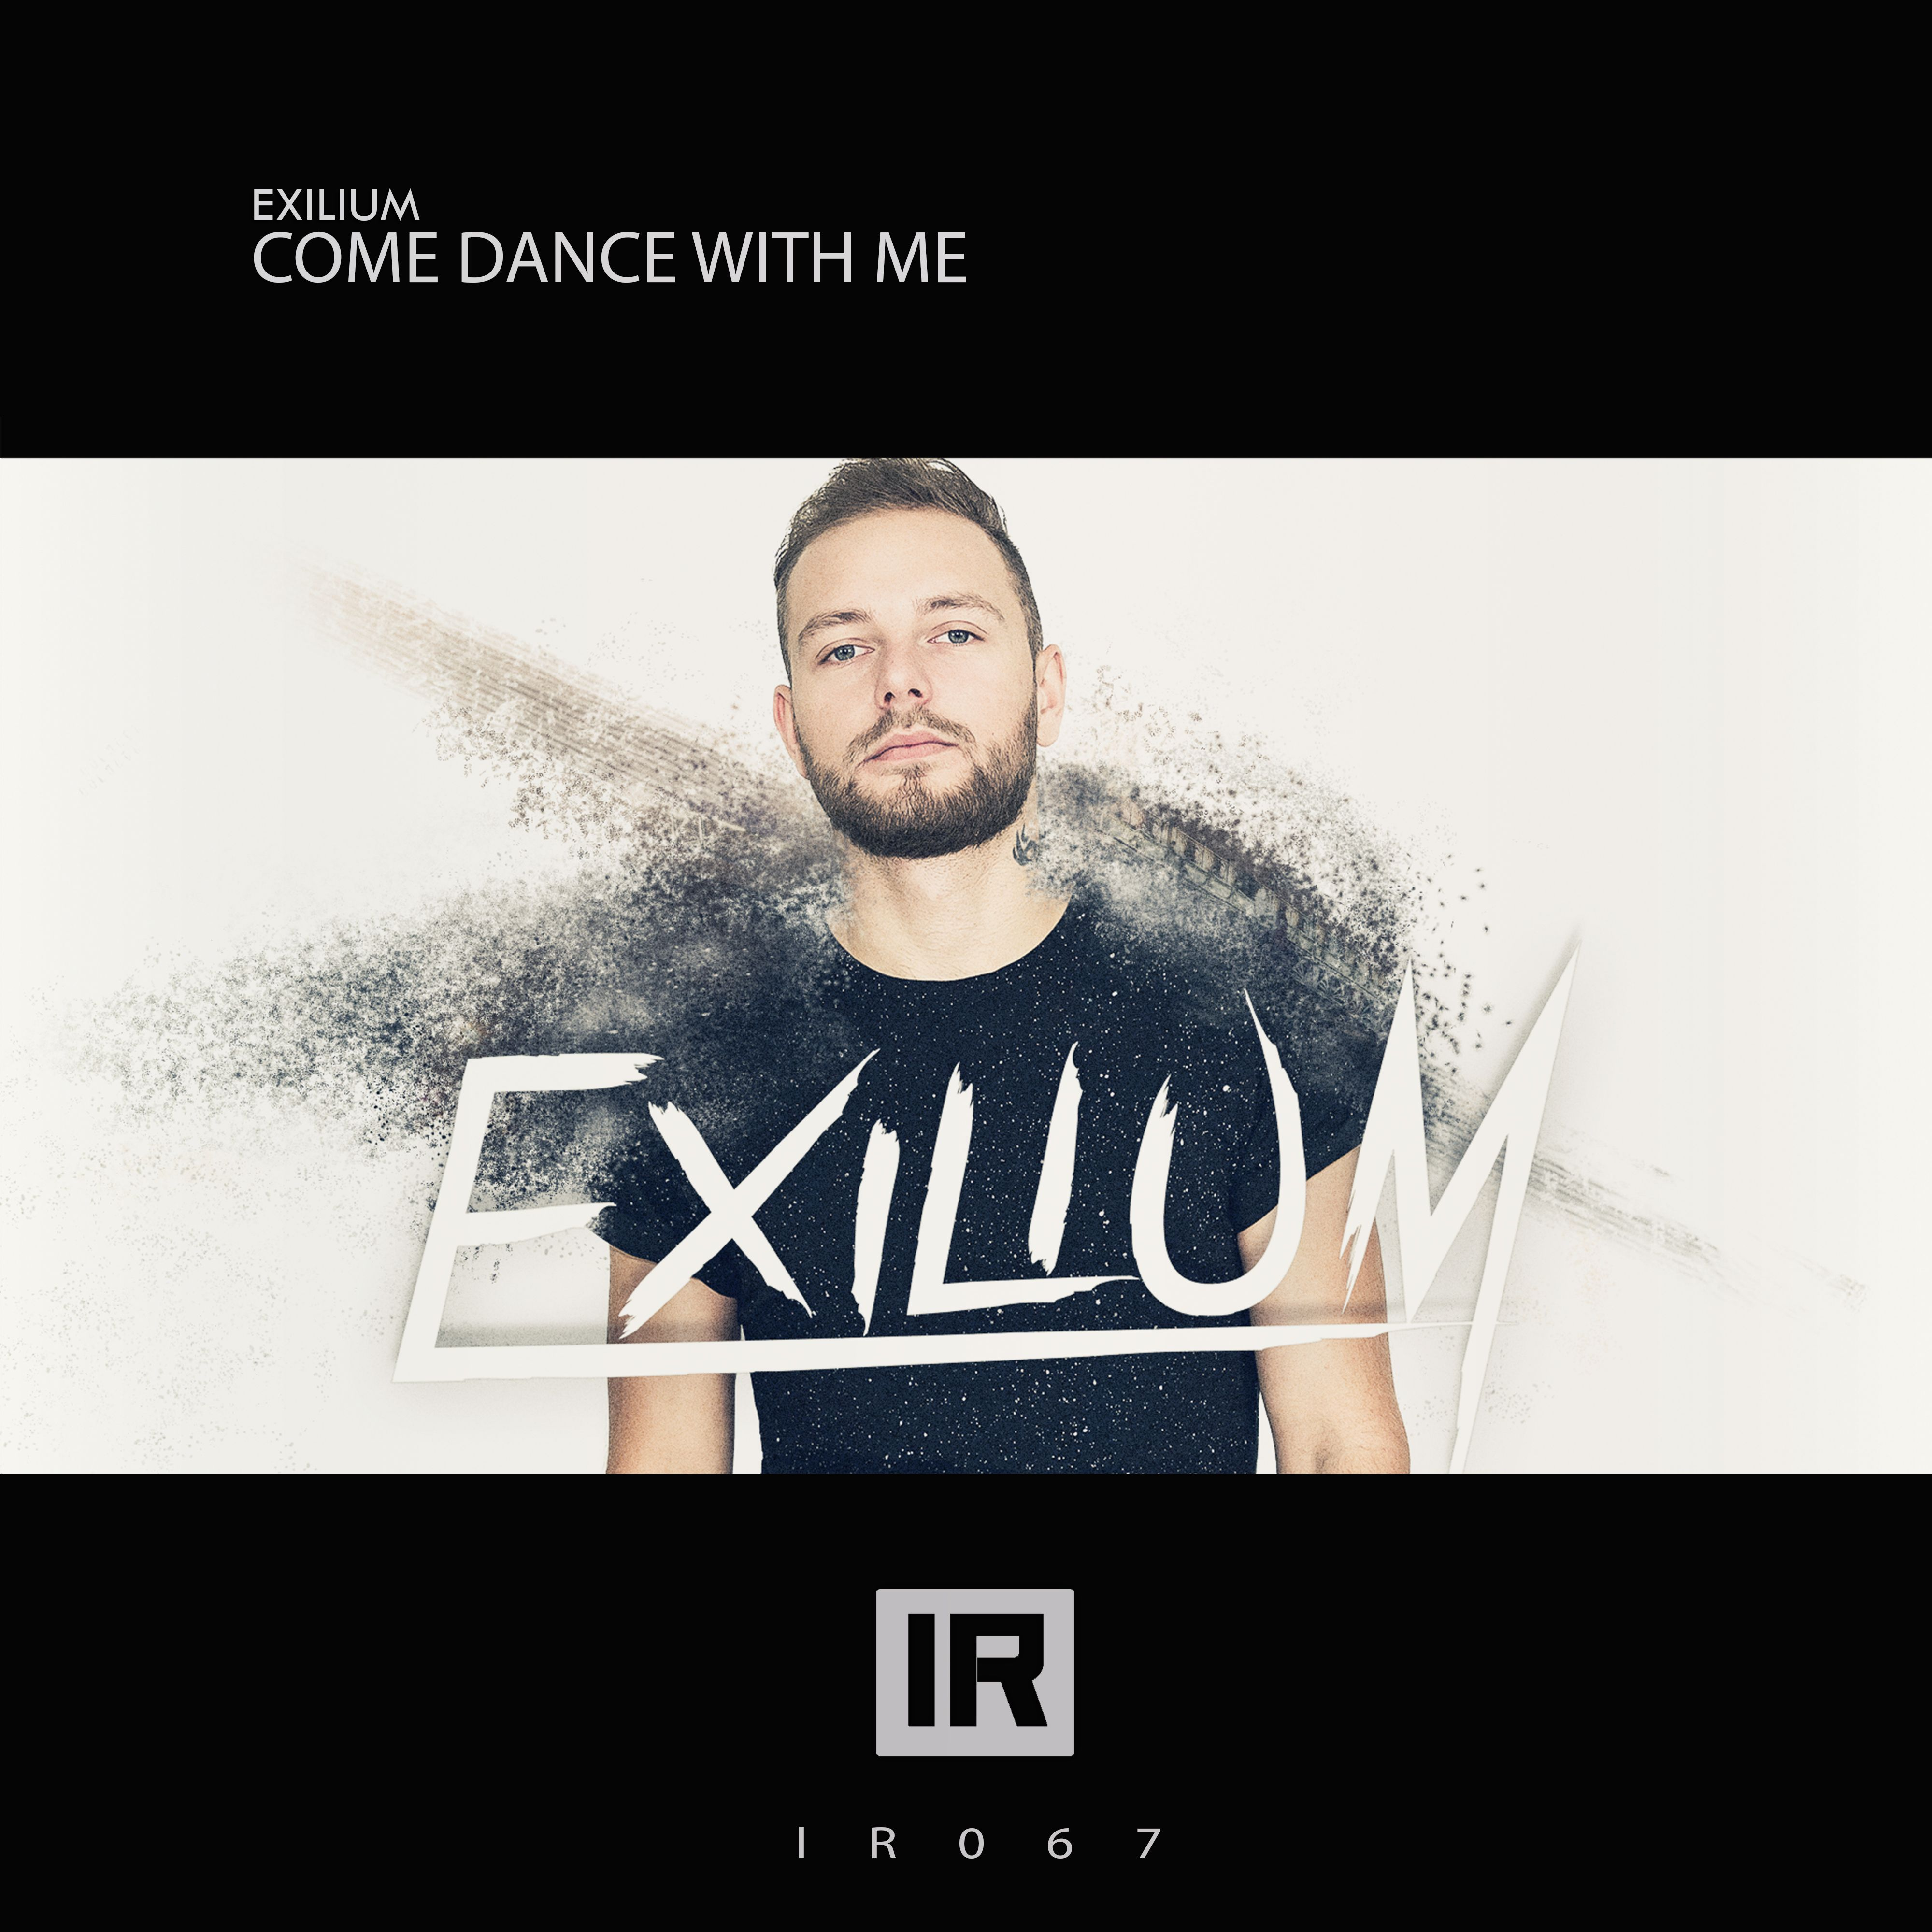 Exilium - Come Dance With Me [INVADERS RECORDS] IR067